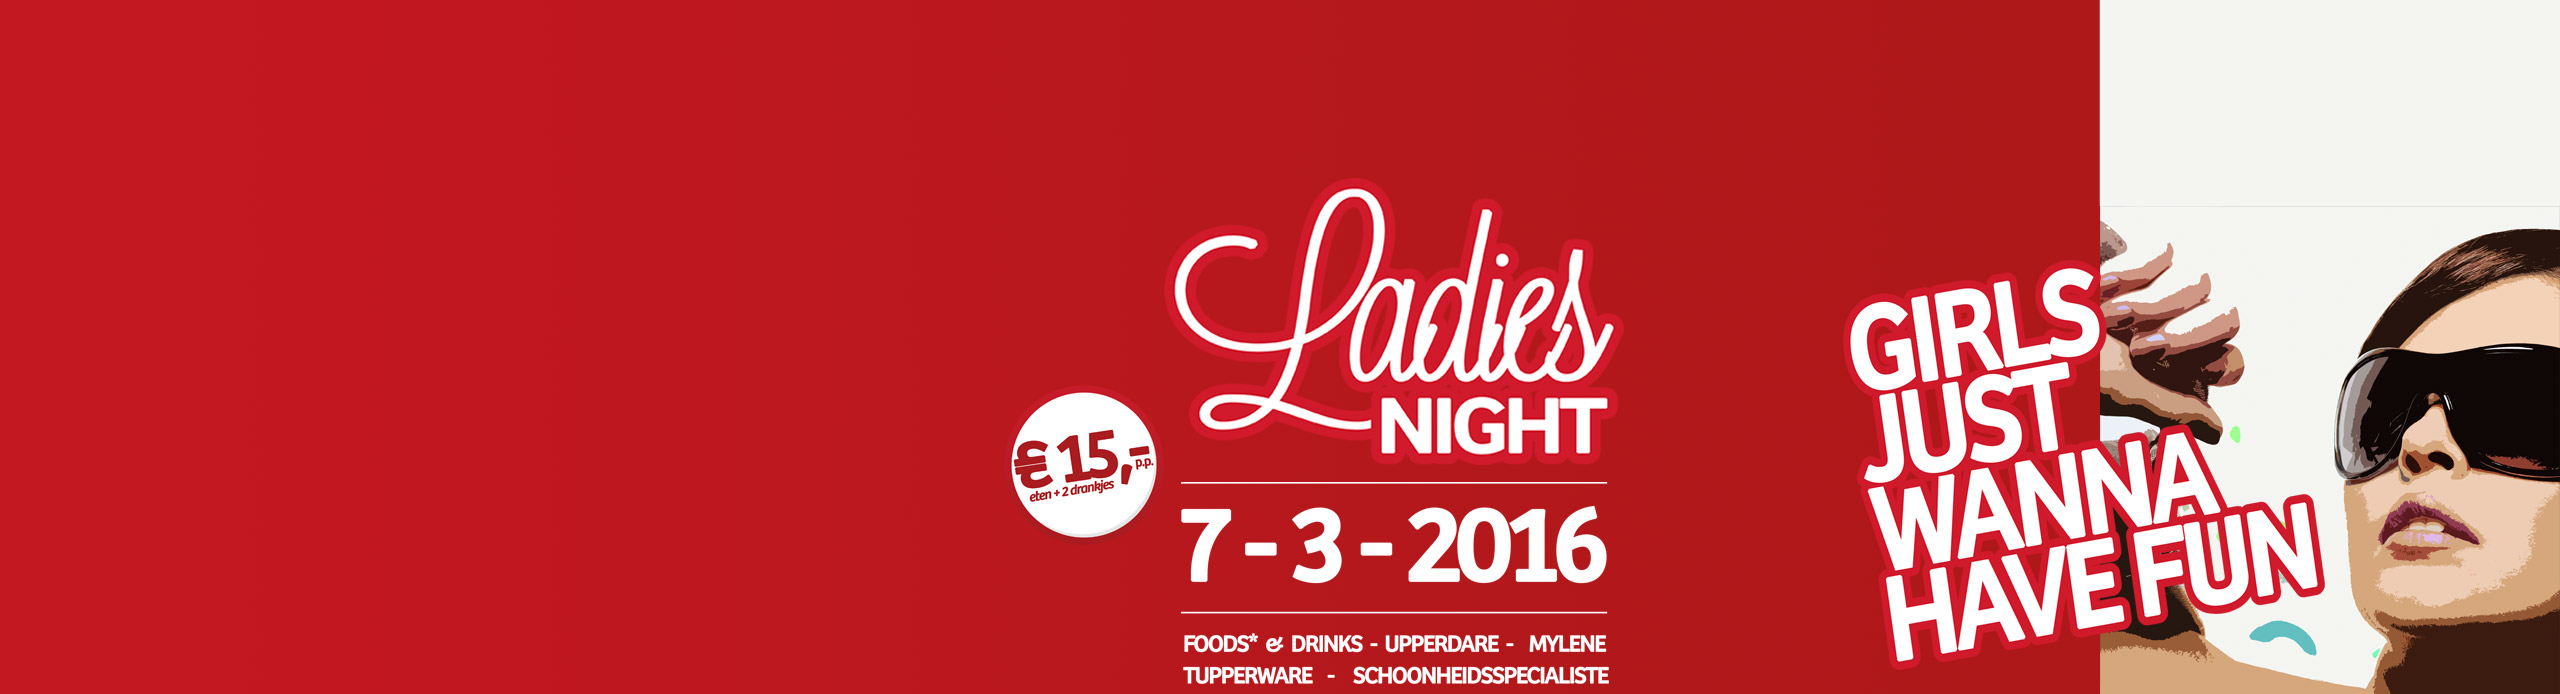 Ladies-night-Yeti-2016